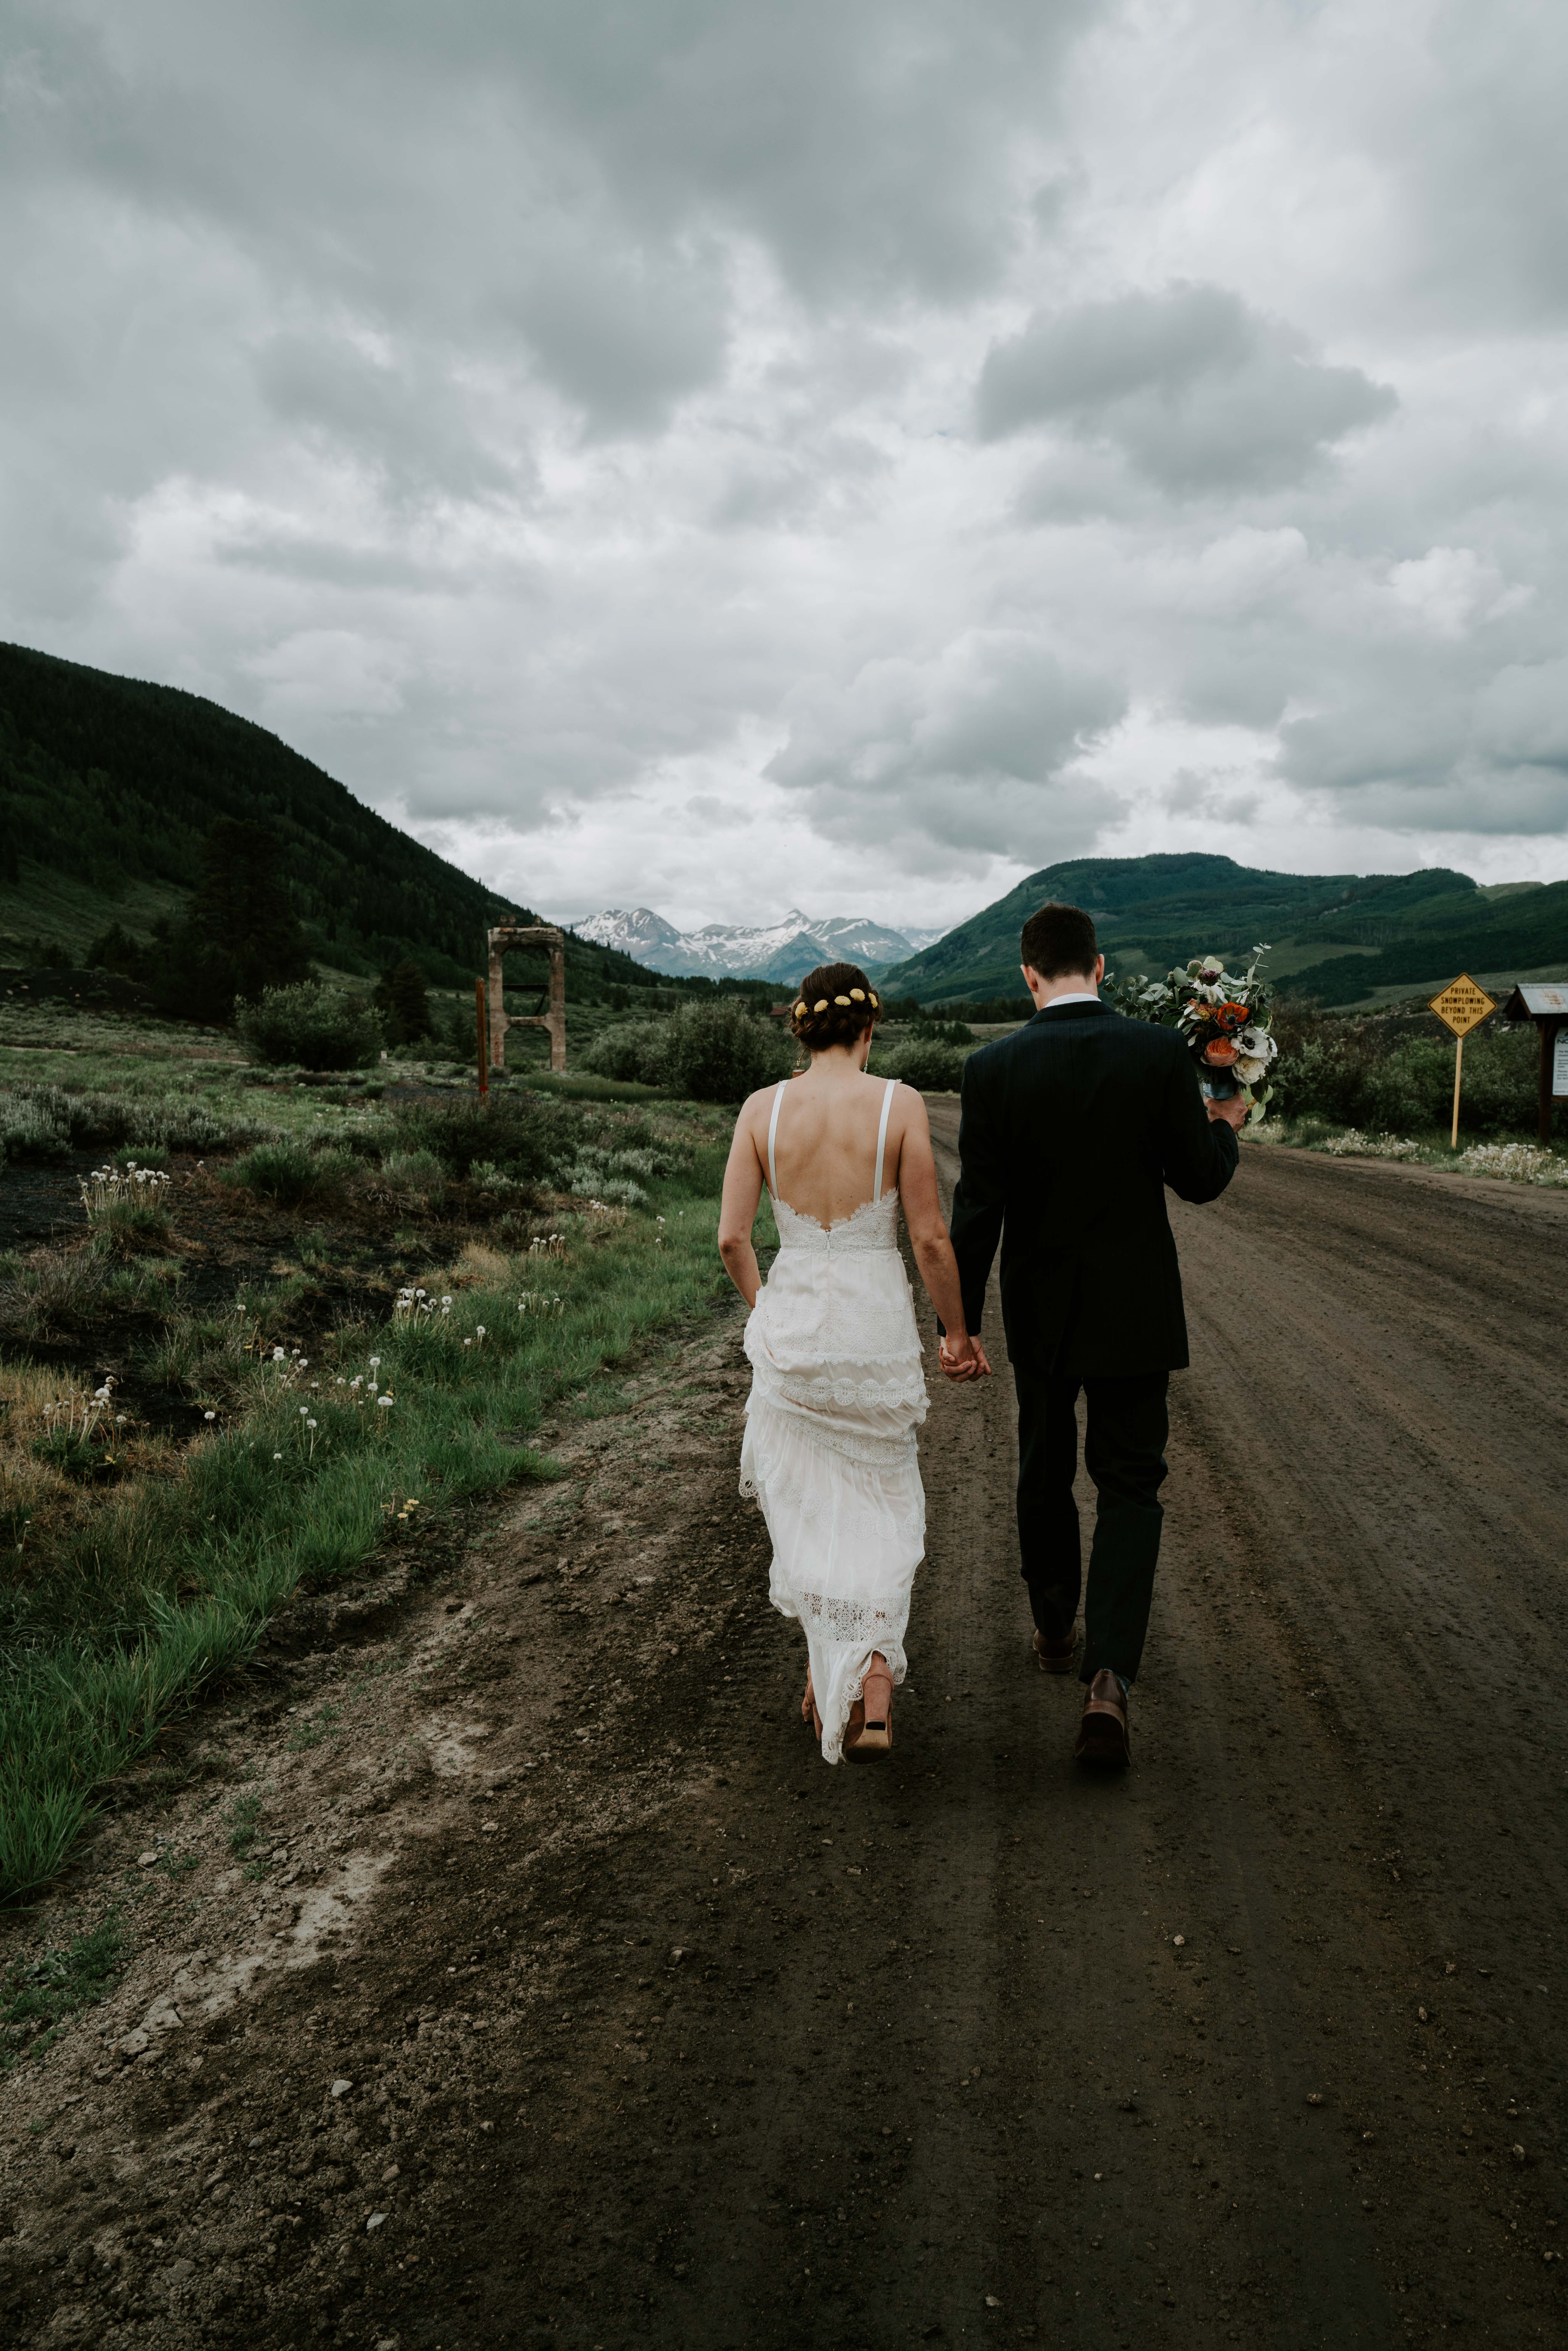 Laura_Alexe_Wedding_Crested_Butte_MegONeillPhotography__180616_94